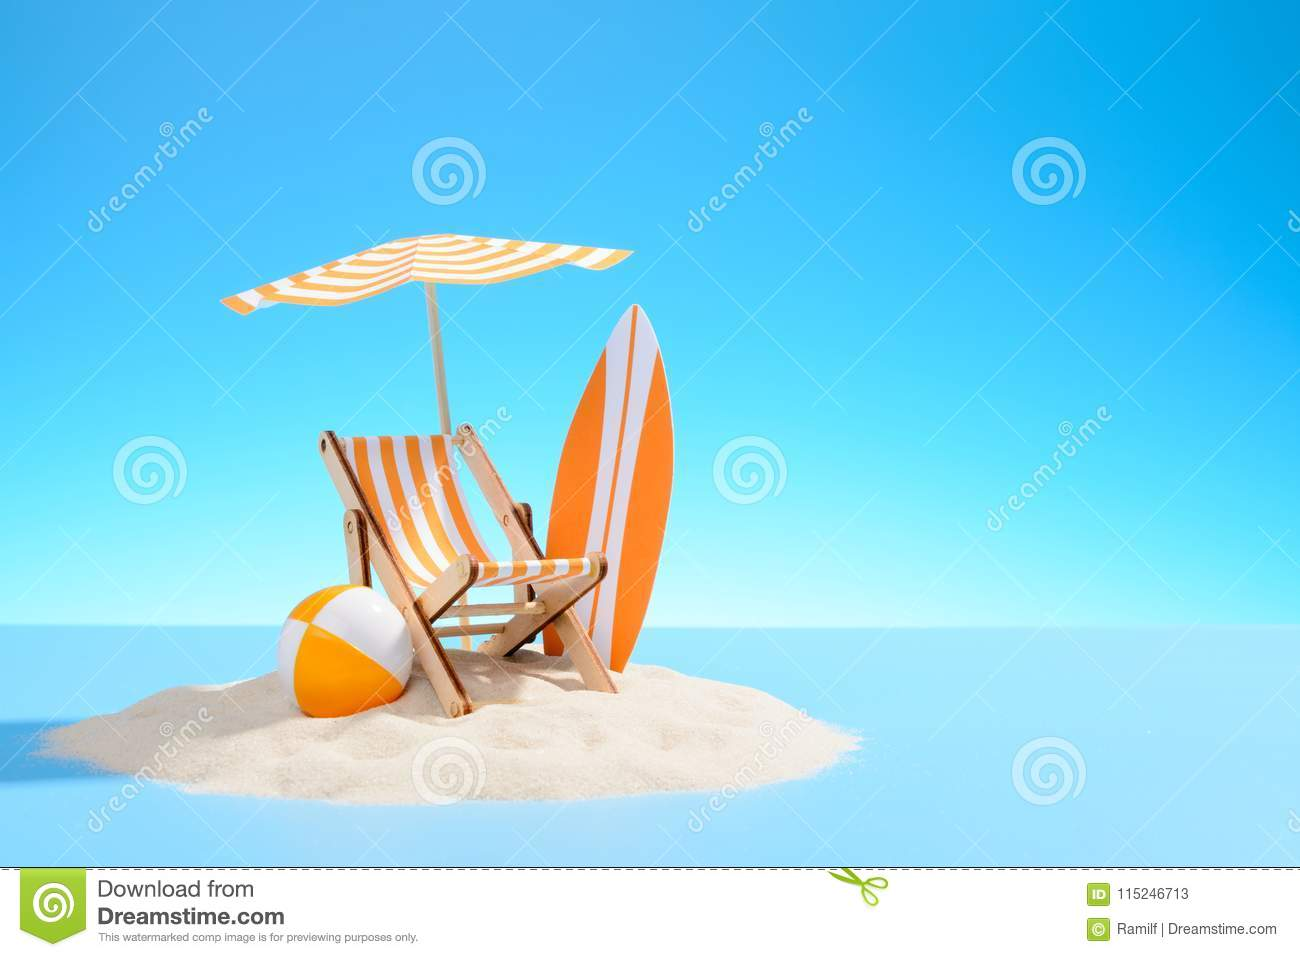 Paradise Island In The Ocean Miniature Beach Accessories For Outdoor Activities Blue Background With Copy Space Stock Image Image Of Background Resort 115246713